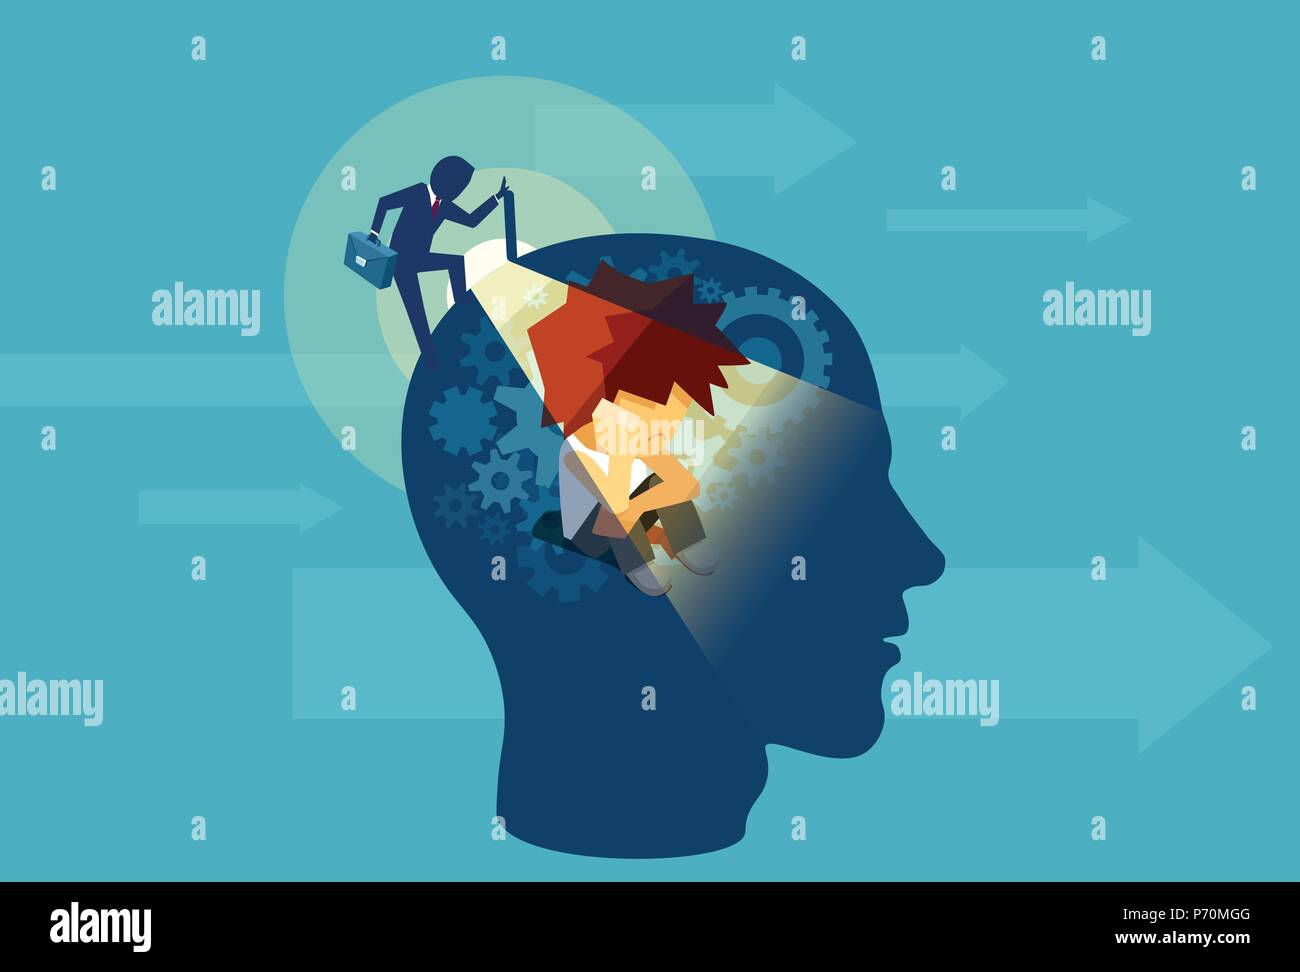 Vector of an business adult man opening a human head with a child subconscious mind sitting inside - Stock Image